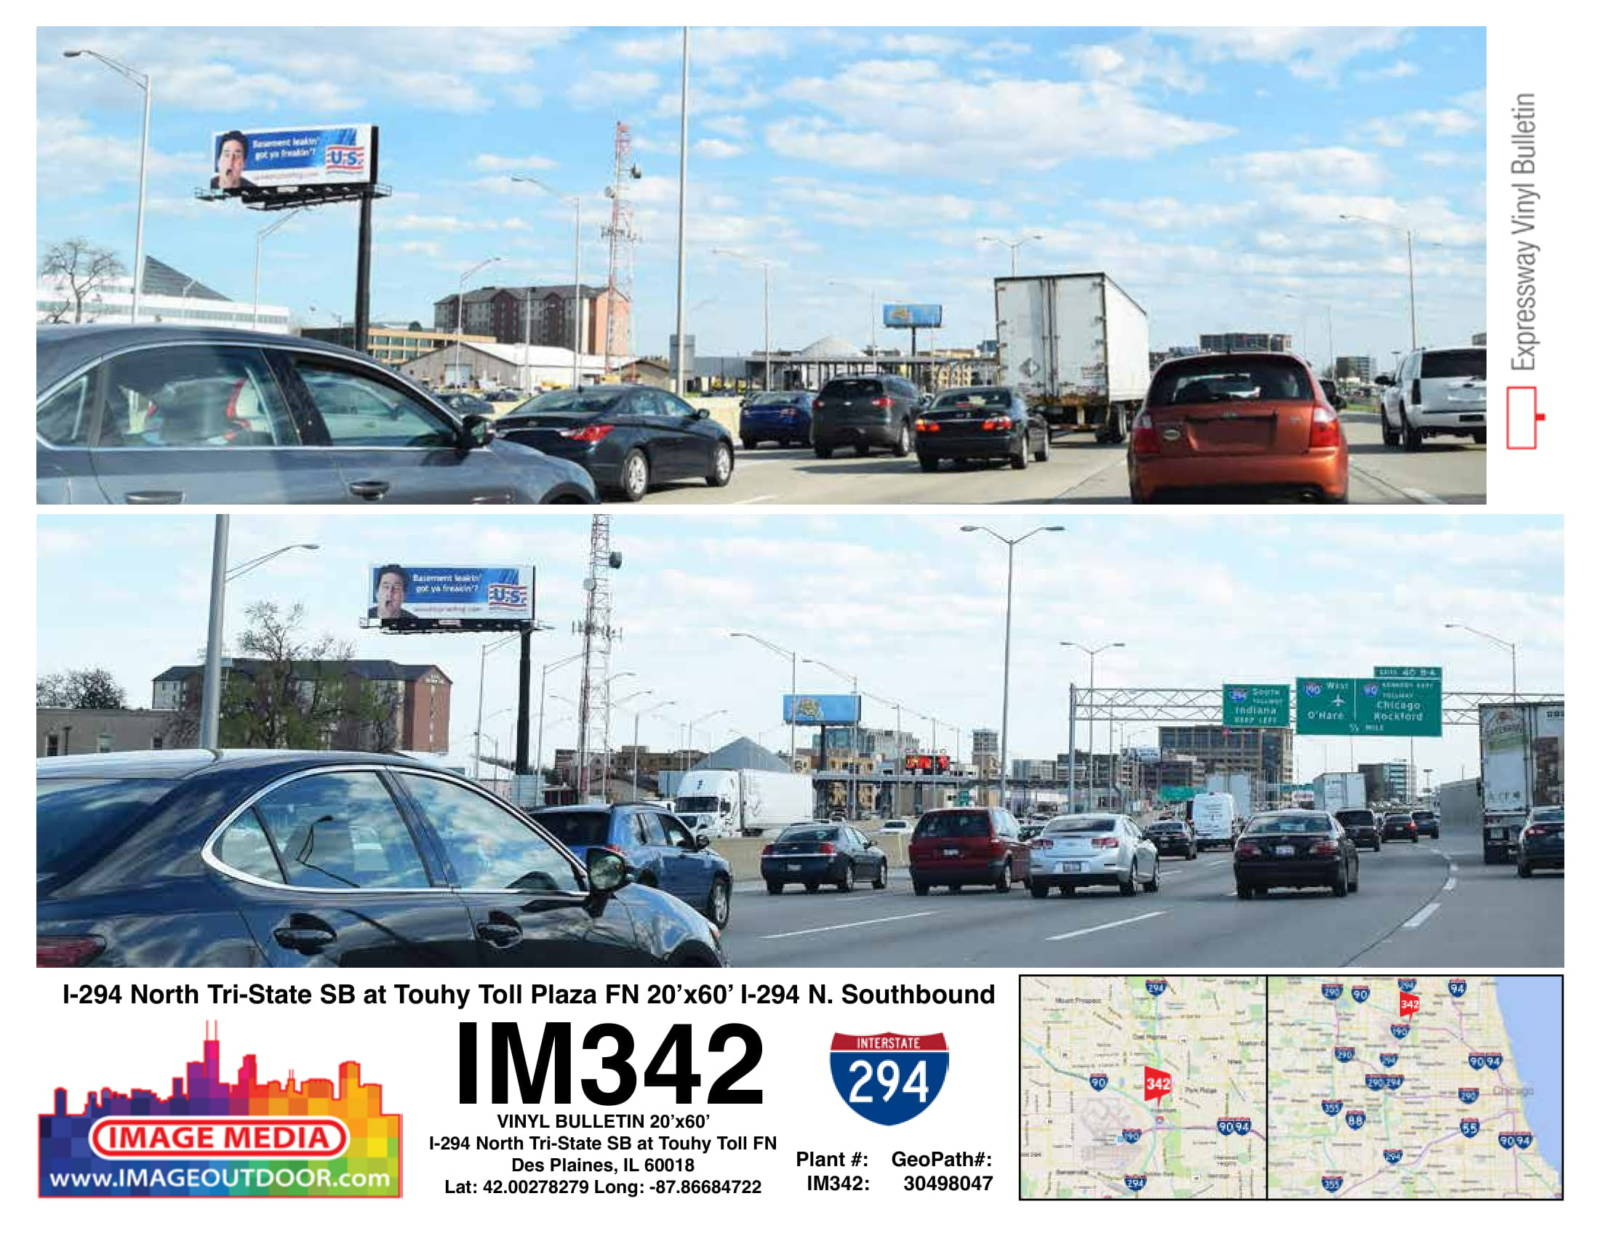 IM342 - bulletin on I-294 southboung at Touhy toll plaza.